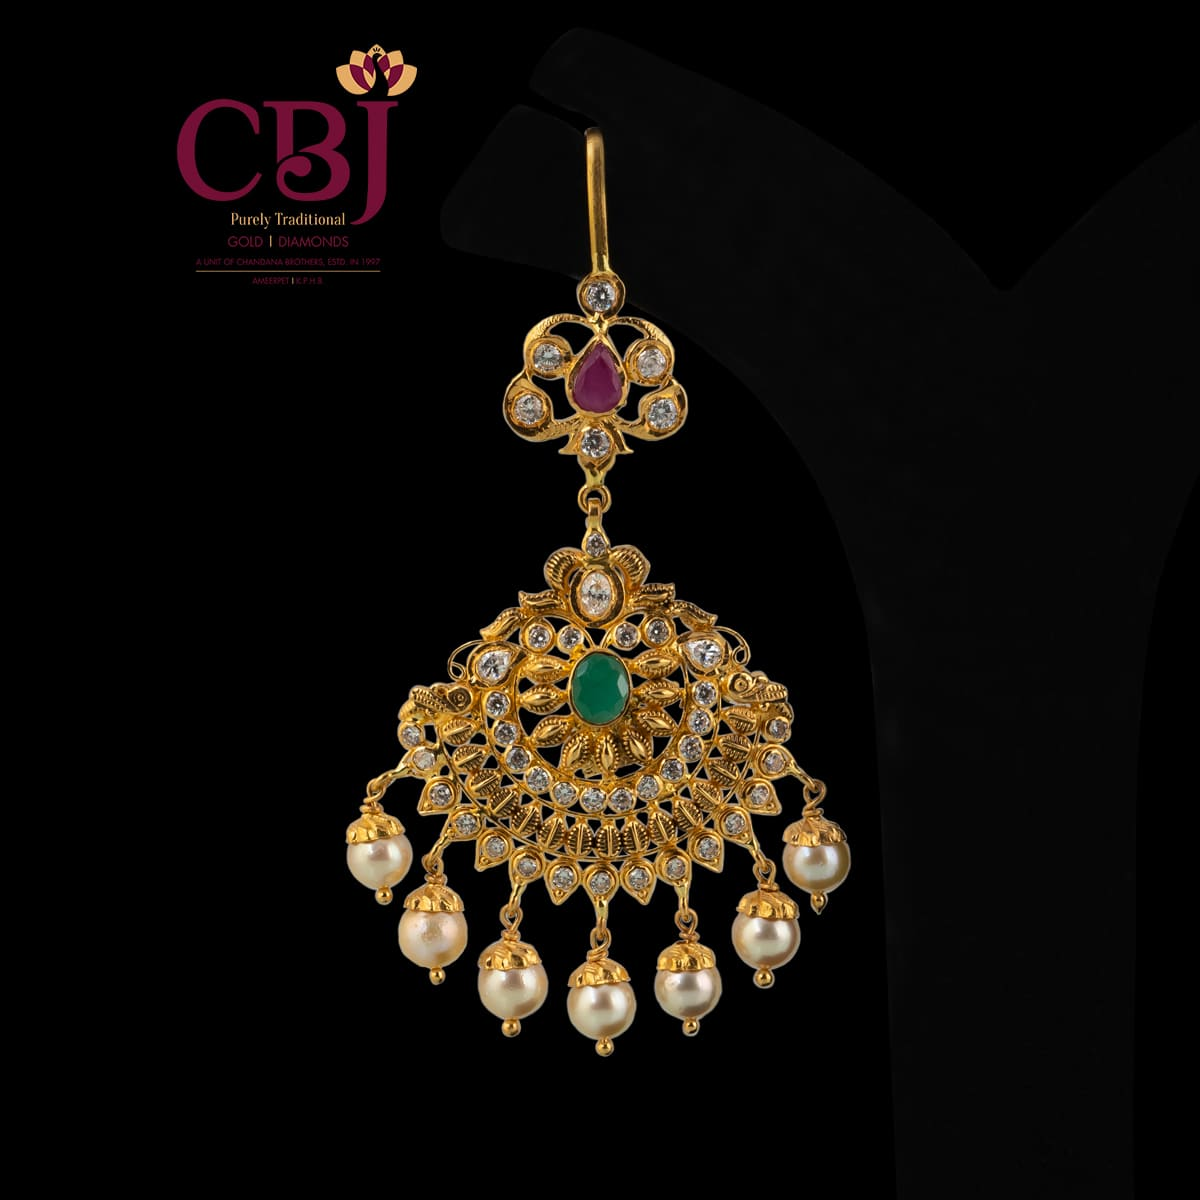 Antique cz tikka featuring rubies, emeralds and pearls.